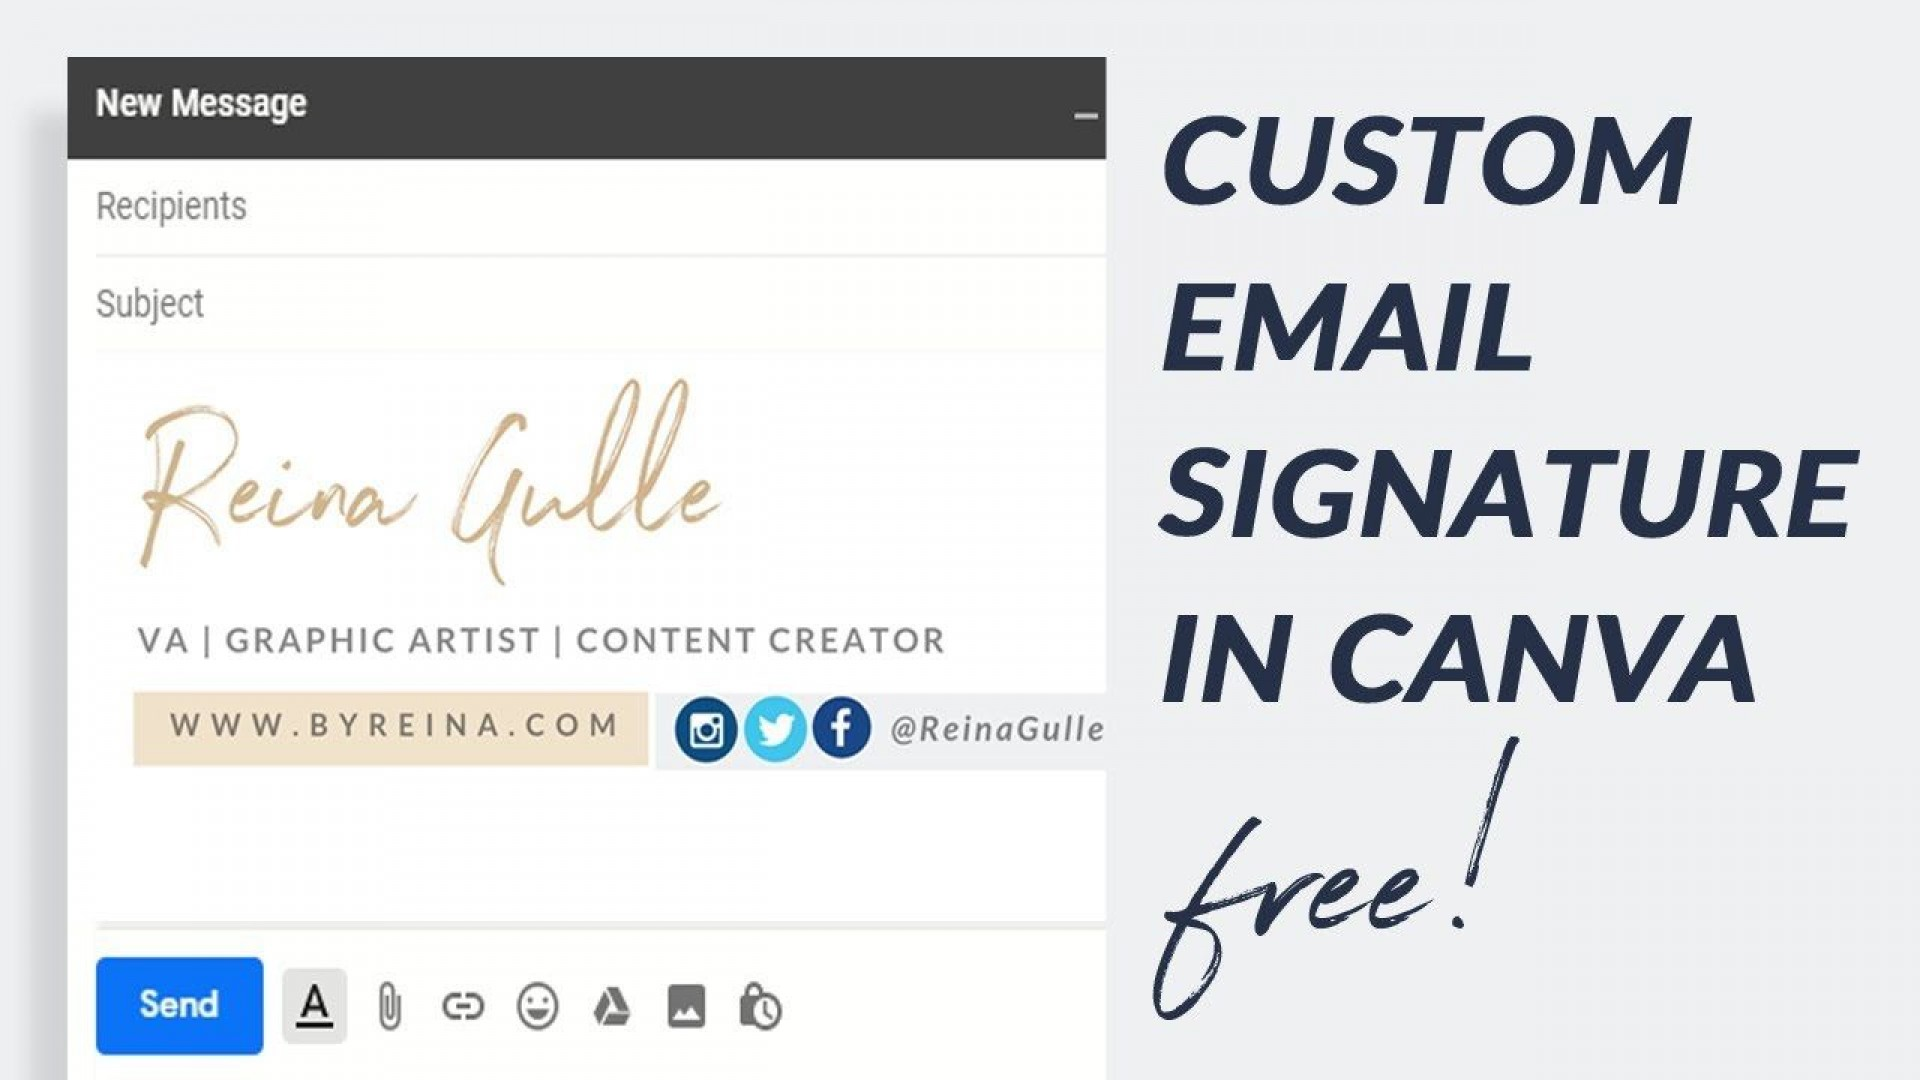 002 Awful Free Email Template For Gmail Photo  Signature1920